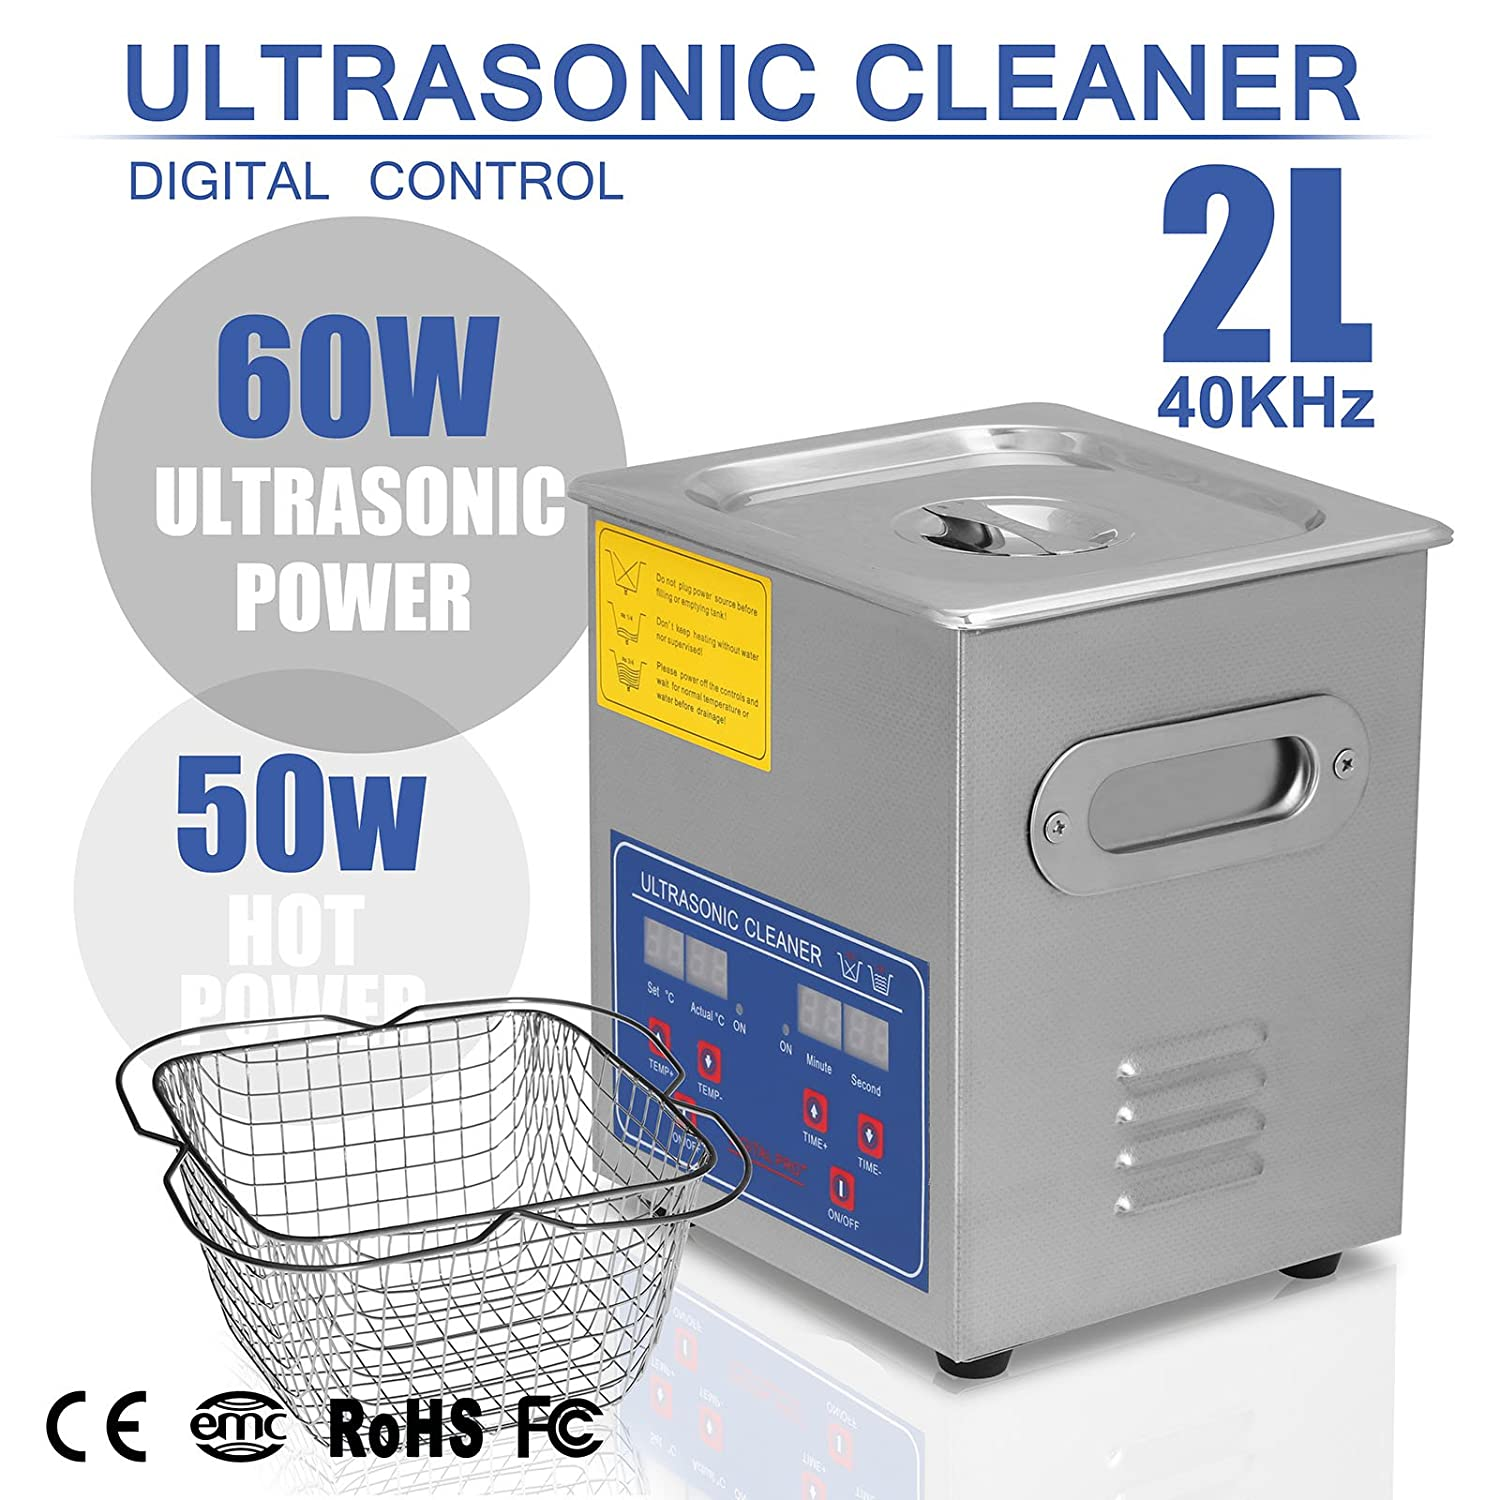 HappyBuy Ultrasonic Cleaner 2L Large Commercial Ultrasonic Cleaner Stainless Steel Ultrasonic Cleaner With Heater And Digital Control Ultrasonic Cleaner Solution Heated With Jewelry Happybuy AY-AI-AU-00041